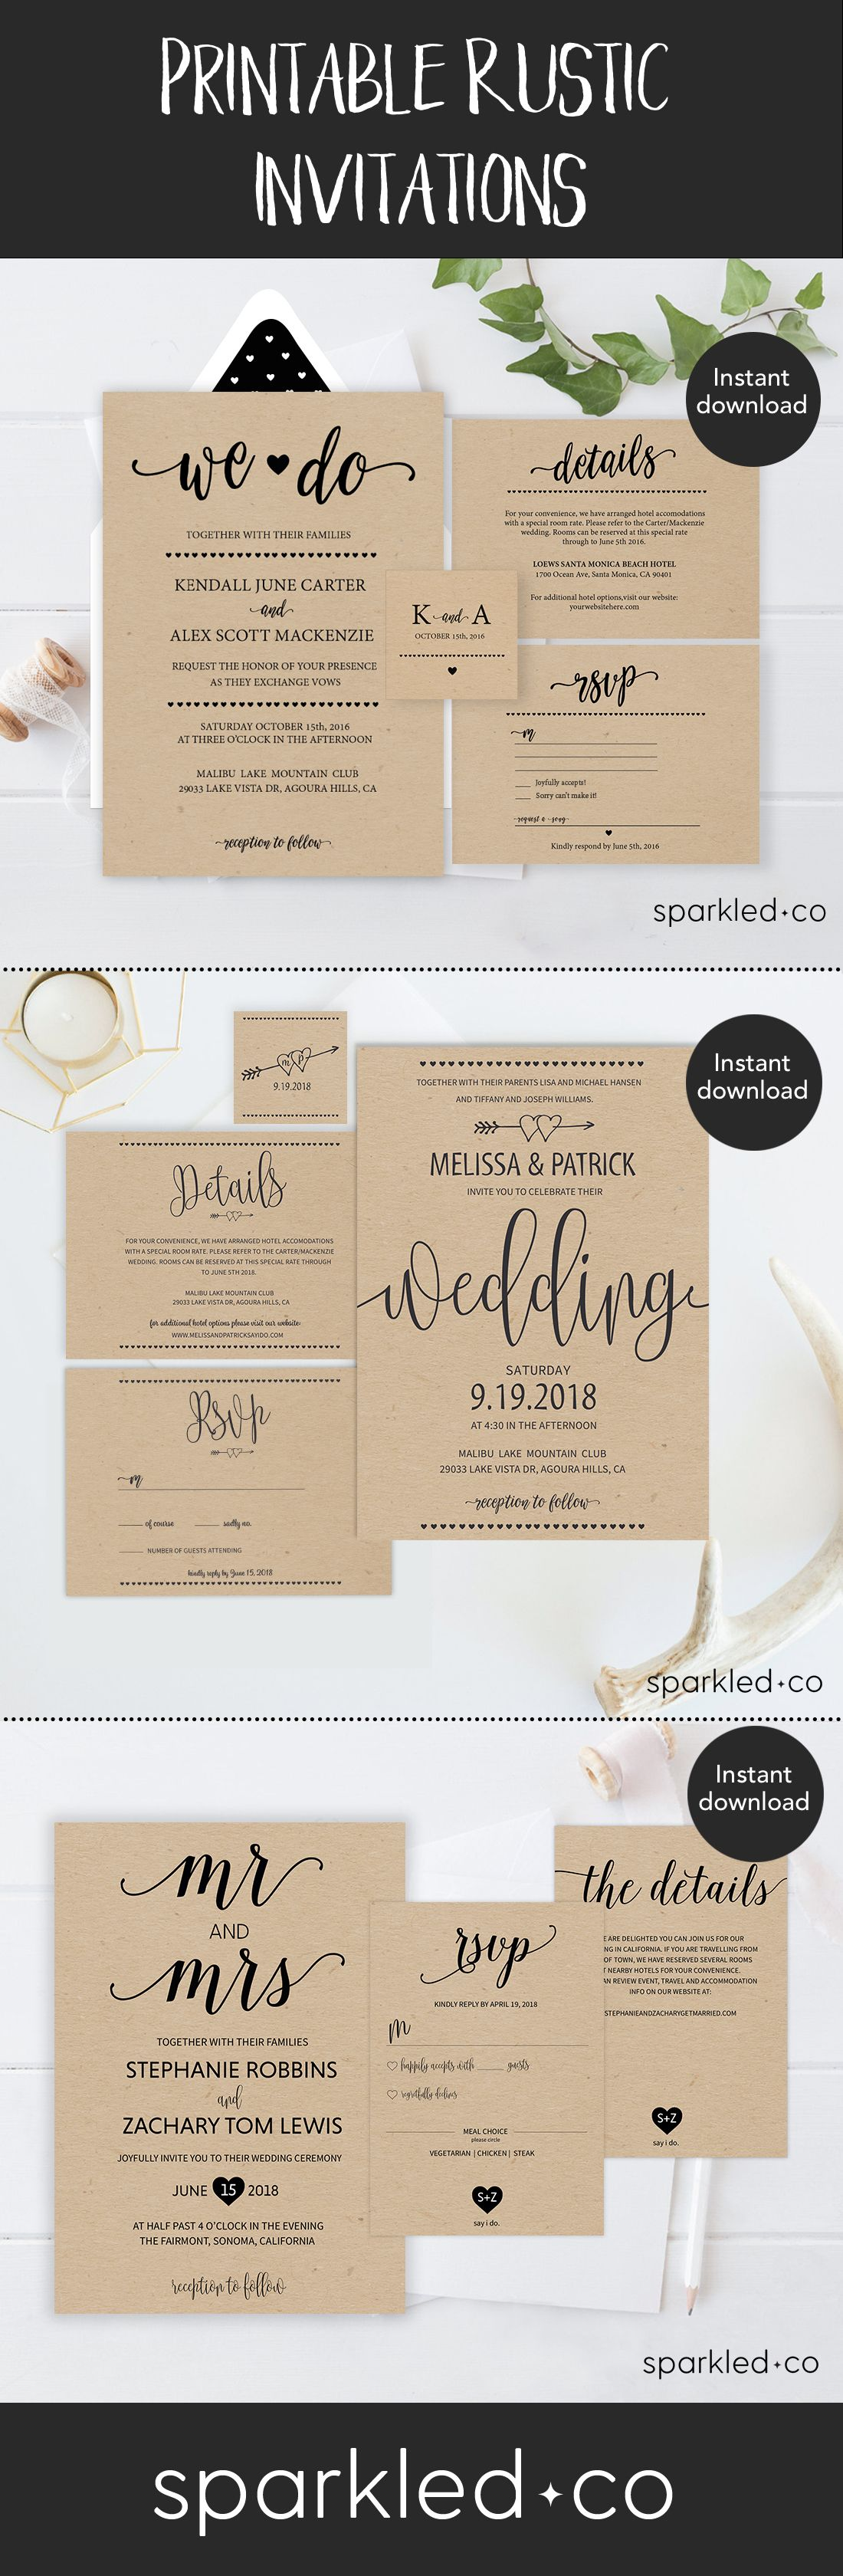 free online printable wedding thank you cards%0A Free Invitation Templates that can be customized and printed to create DIY  rustic wedding invitations   http   www cardsandpockets com freeweddingi u